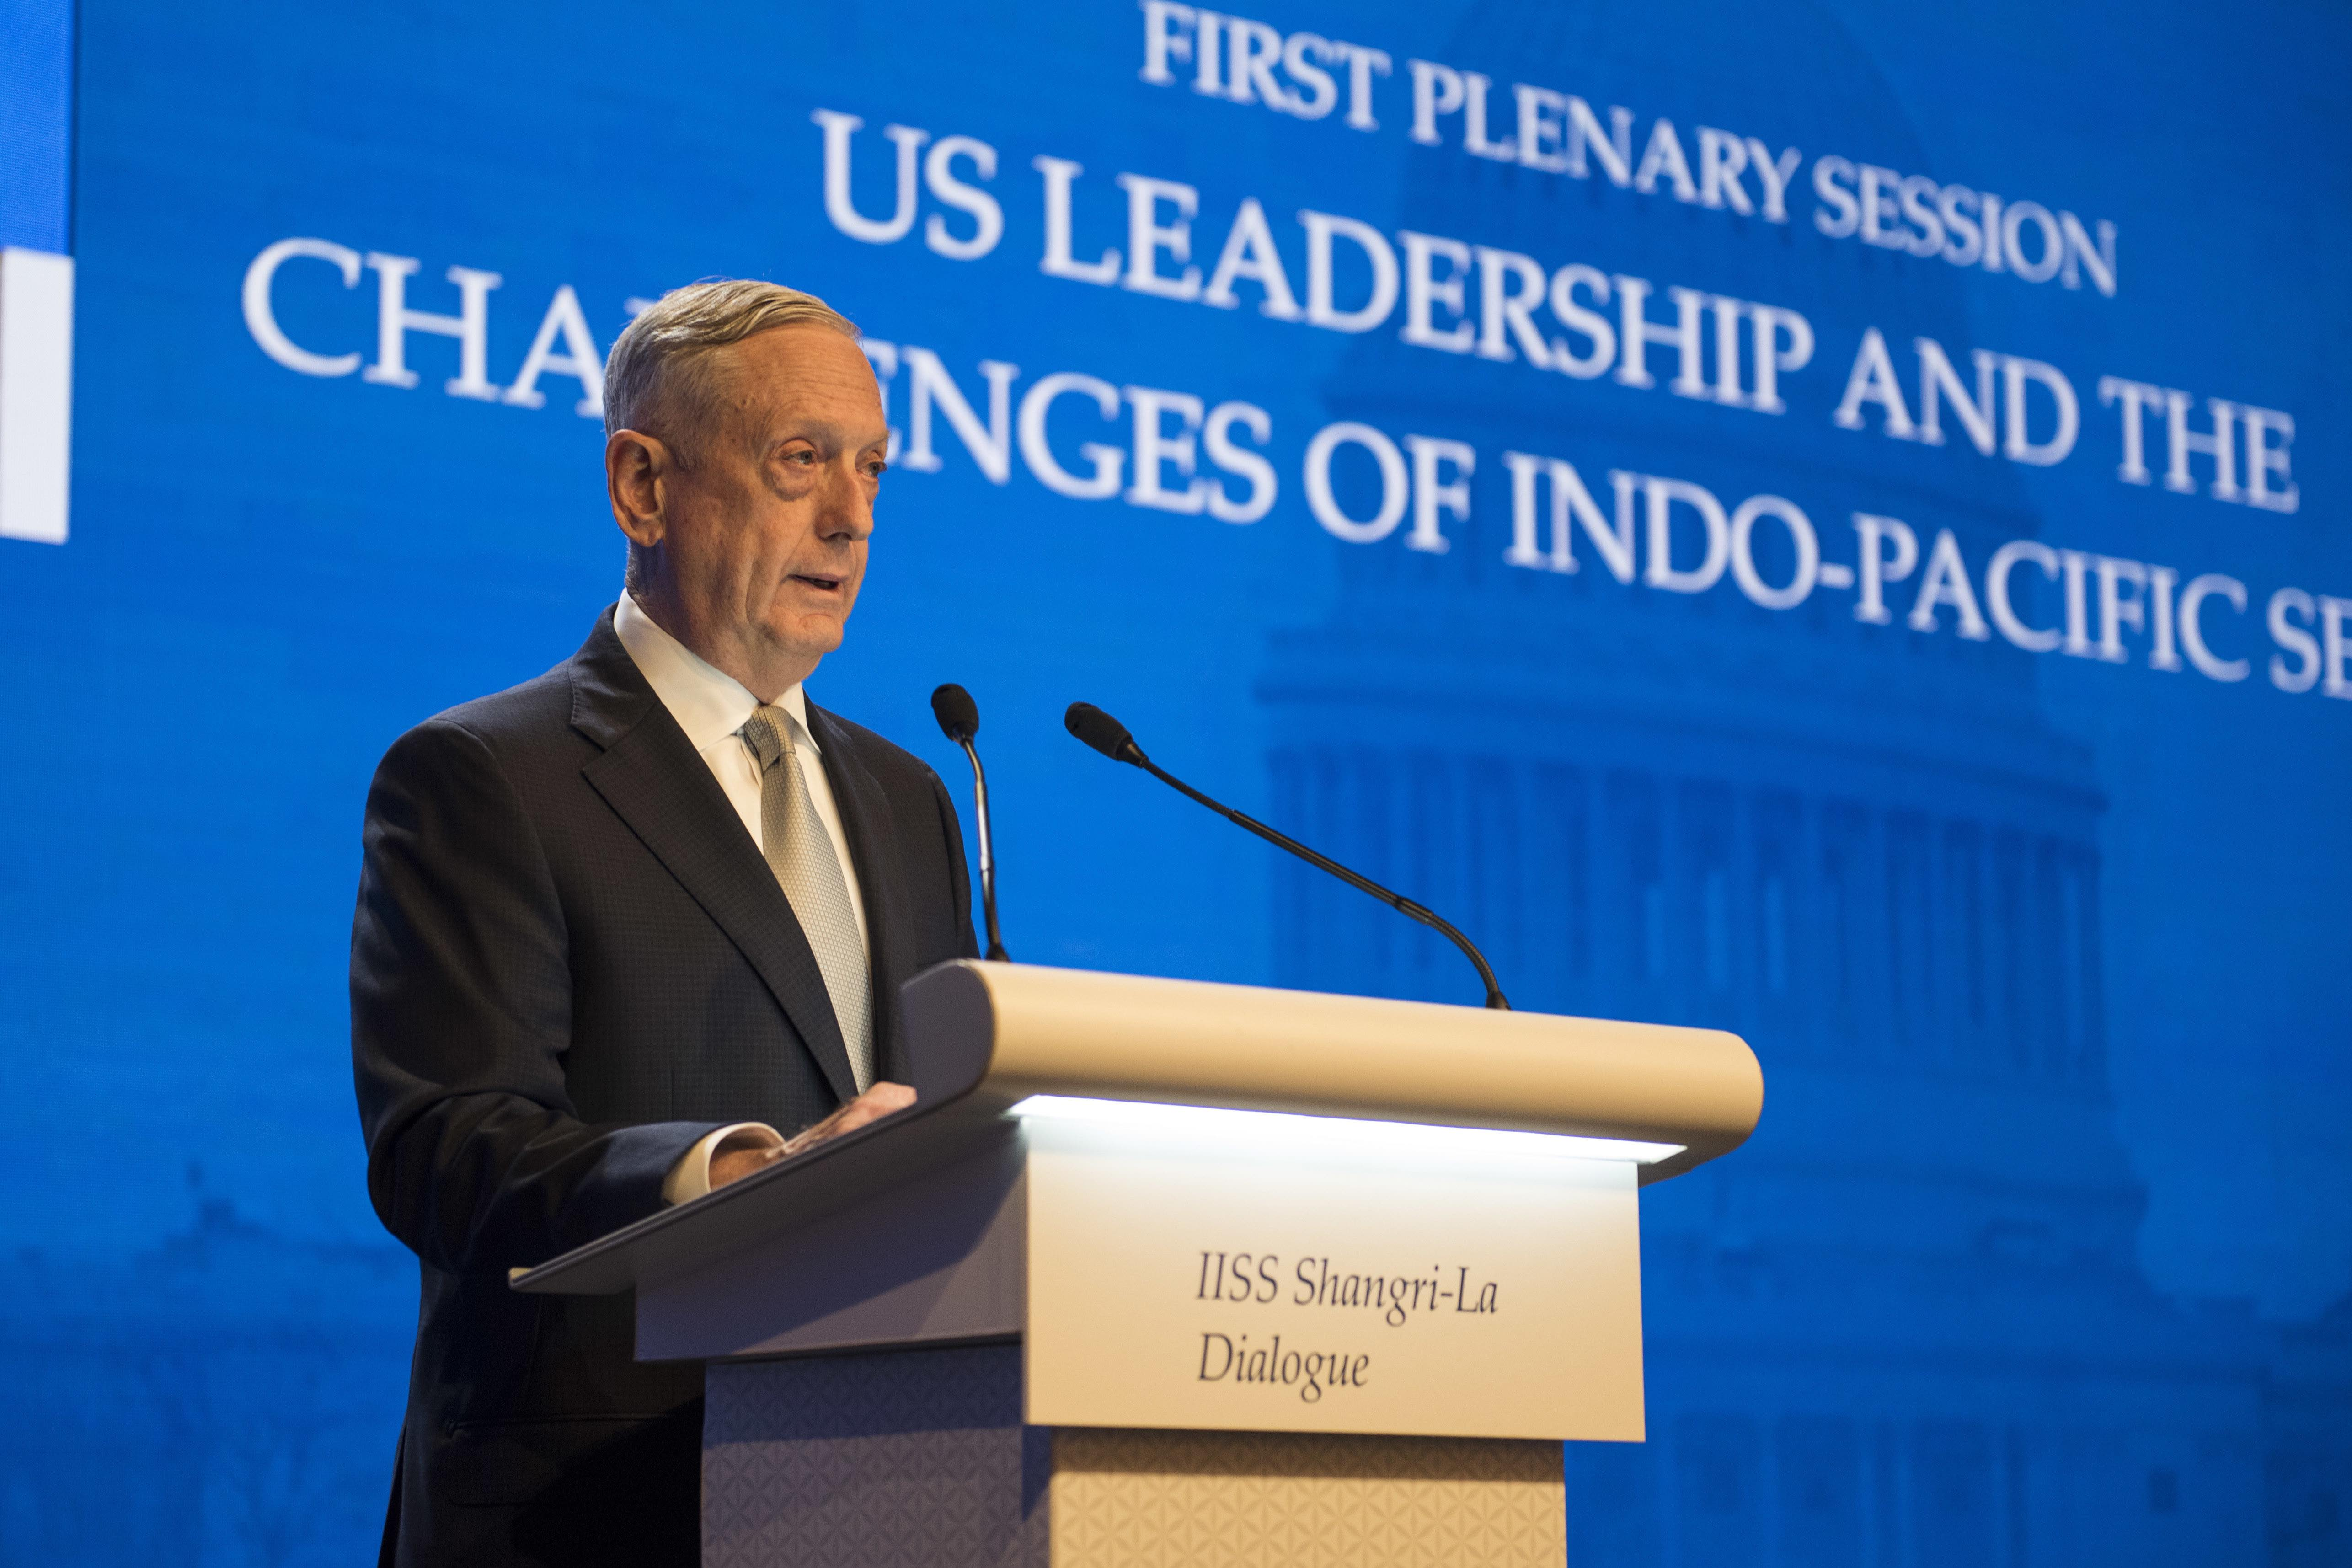 180602-N-OU129-267 SINGAPORE (June 1, 2018) Secretary of Defense Jim Mattis delivers remarks during the first plenary session of the Shangri-La Dialogue 2018 June 2. The Shangri-La Dialogue, held annually by the independent think tank, the International Institute for Strategic Studies (IISS), is an inter-governmental security forum which is attended by defense ministers and delegates from more than 50 nations. (U.S. Navy photo by Mass Communication Specialist 2nd Class Joshua Fulton/Released)